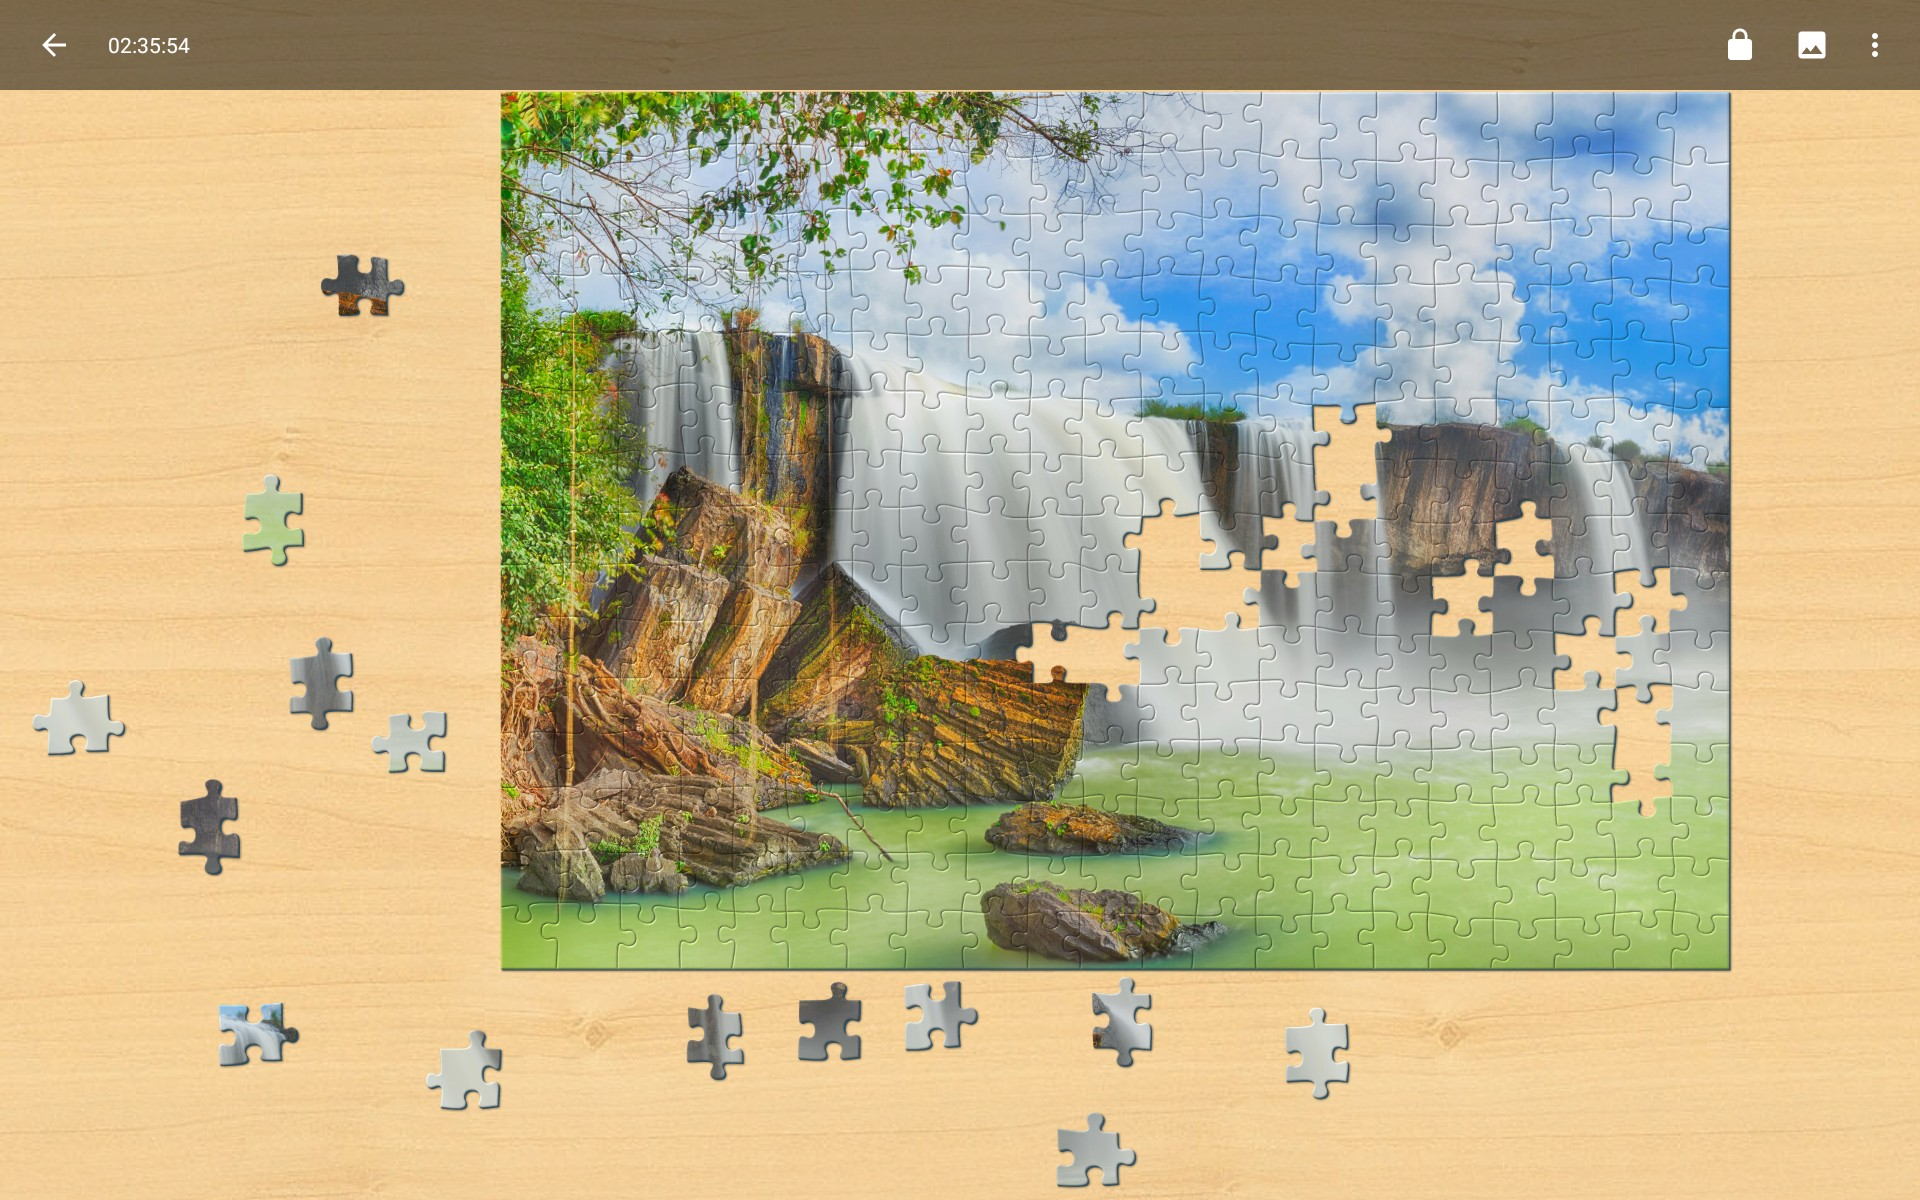 Amazon.com: Landscapes Jigsaw Puzzles: Appstore for Android